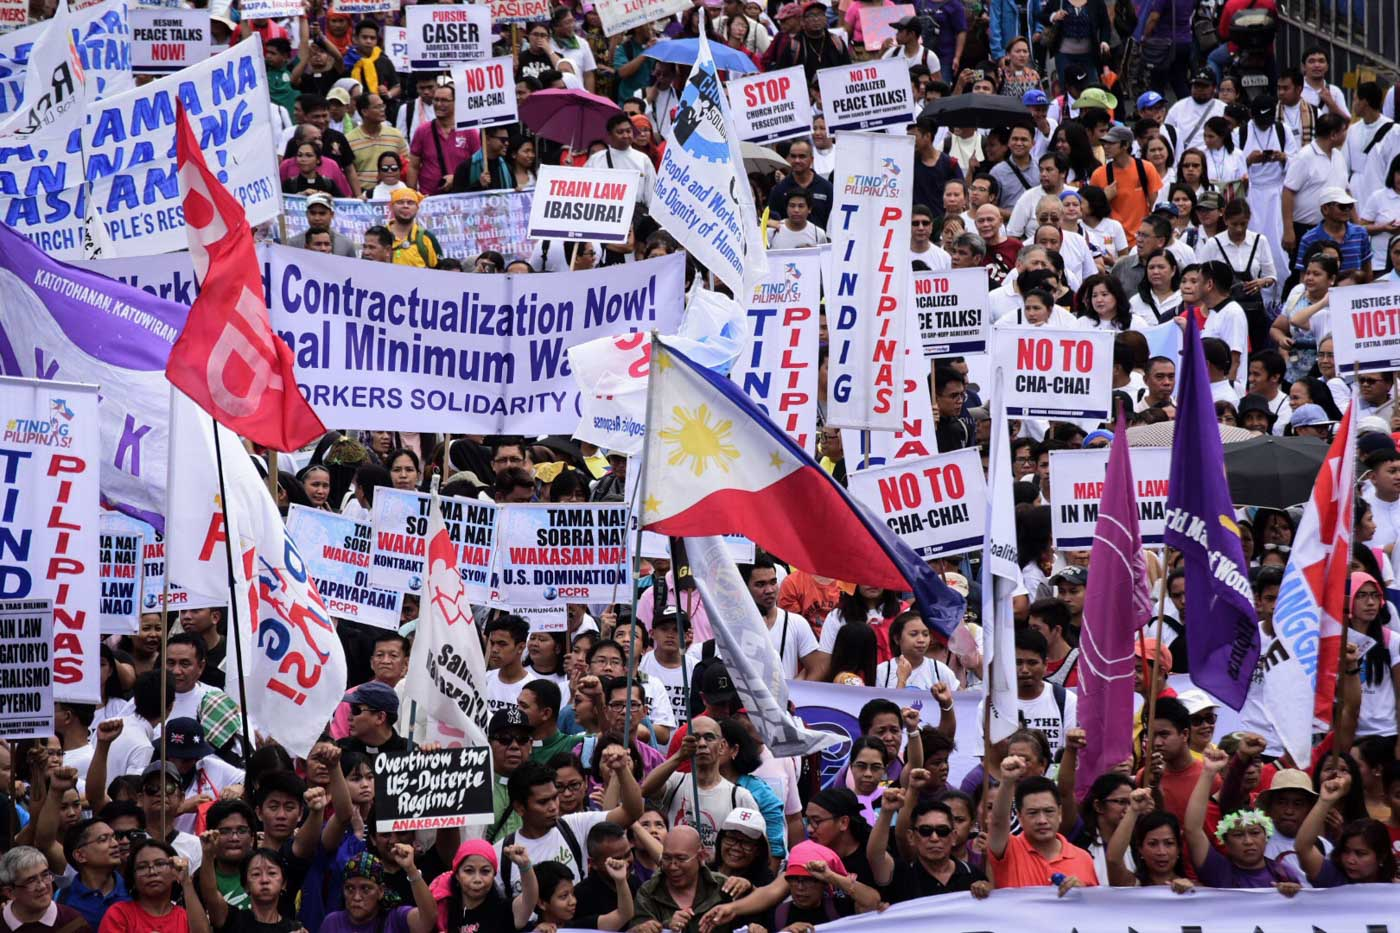 MARCH. Protesters march towards Batasan along Commonwealth Ave., Quezon City for the United People's SONA during President Duterte's 3rd State Of The Nation Address. Photo by Alecs Ongcal/Rappler